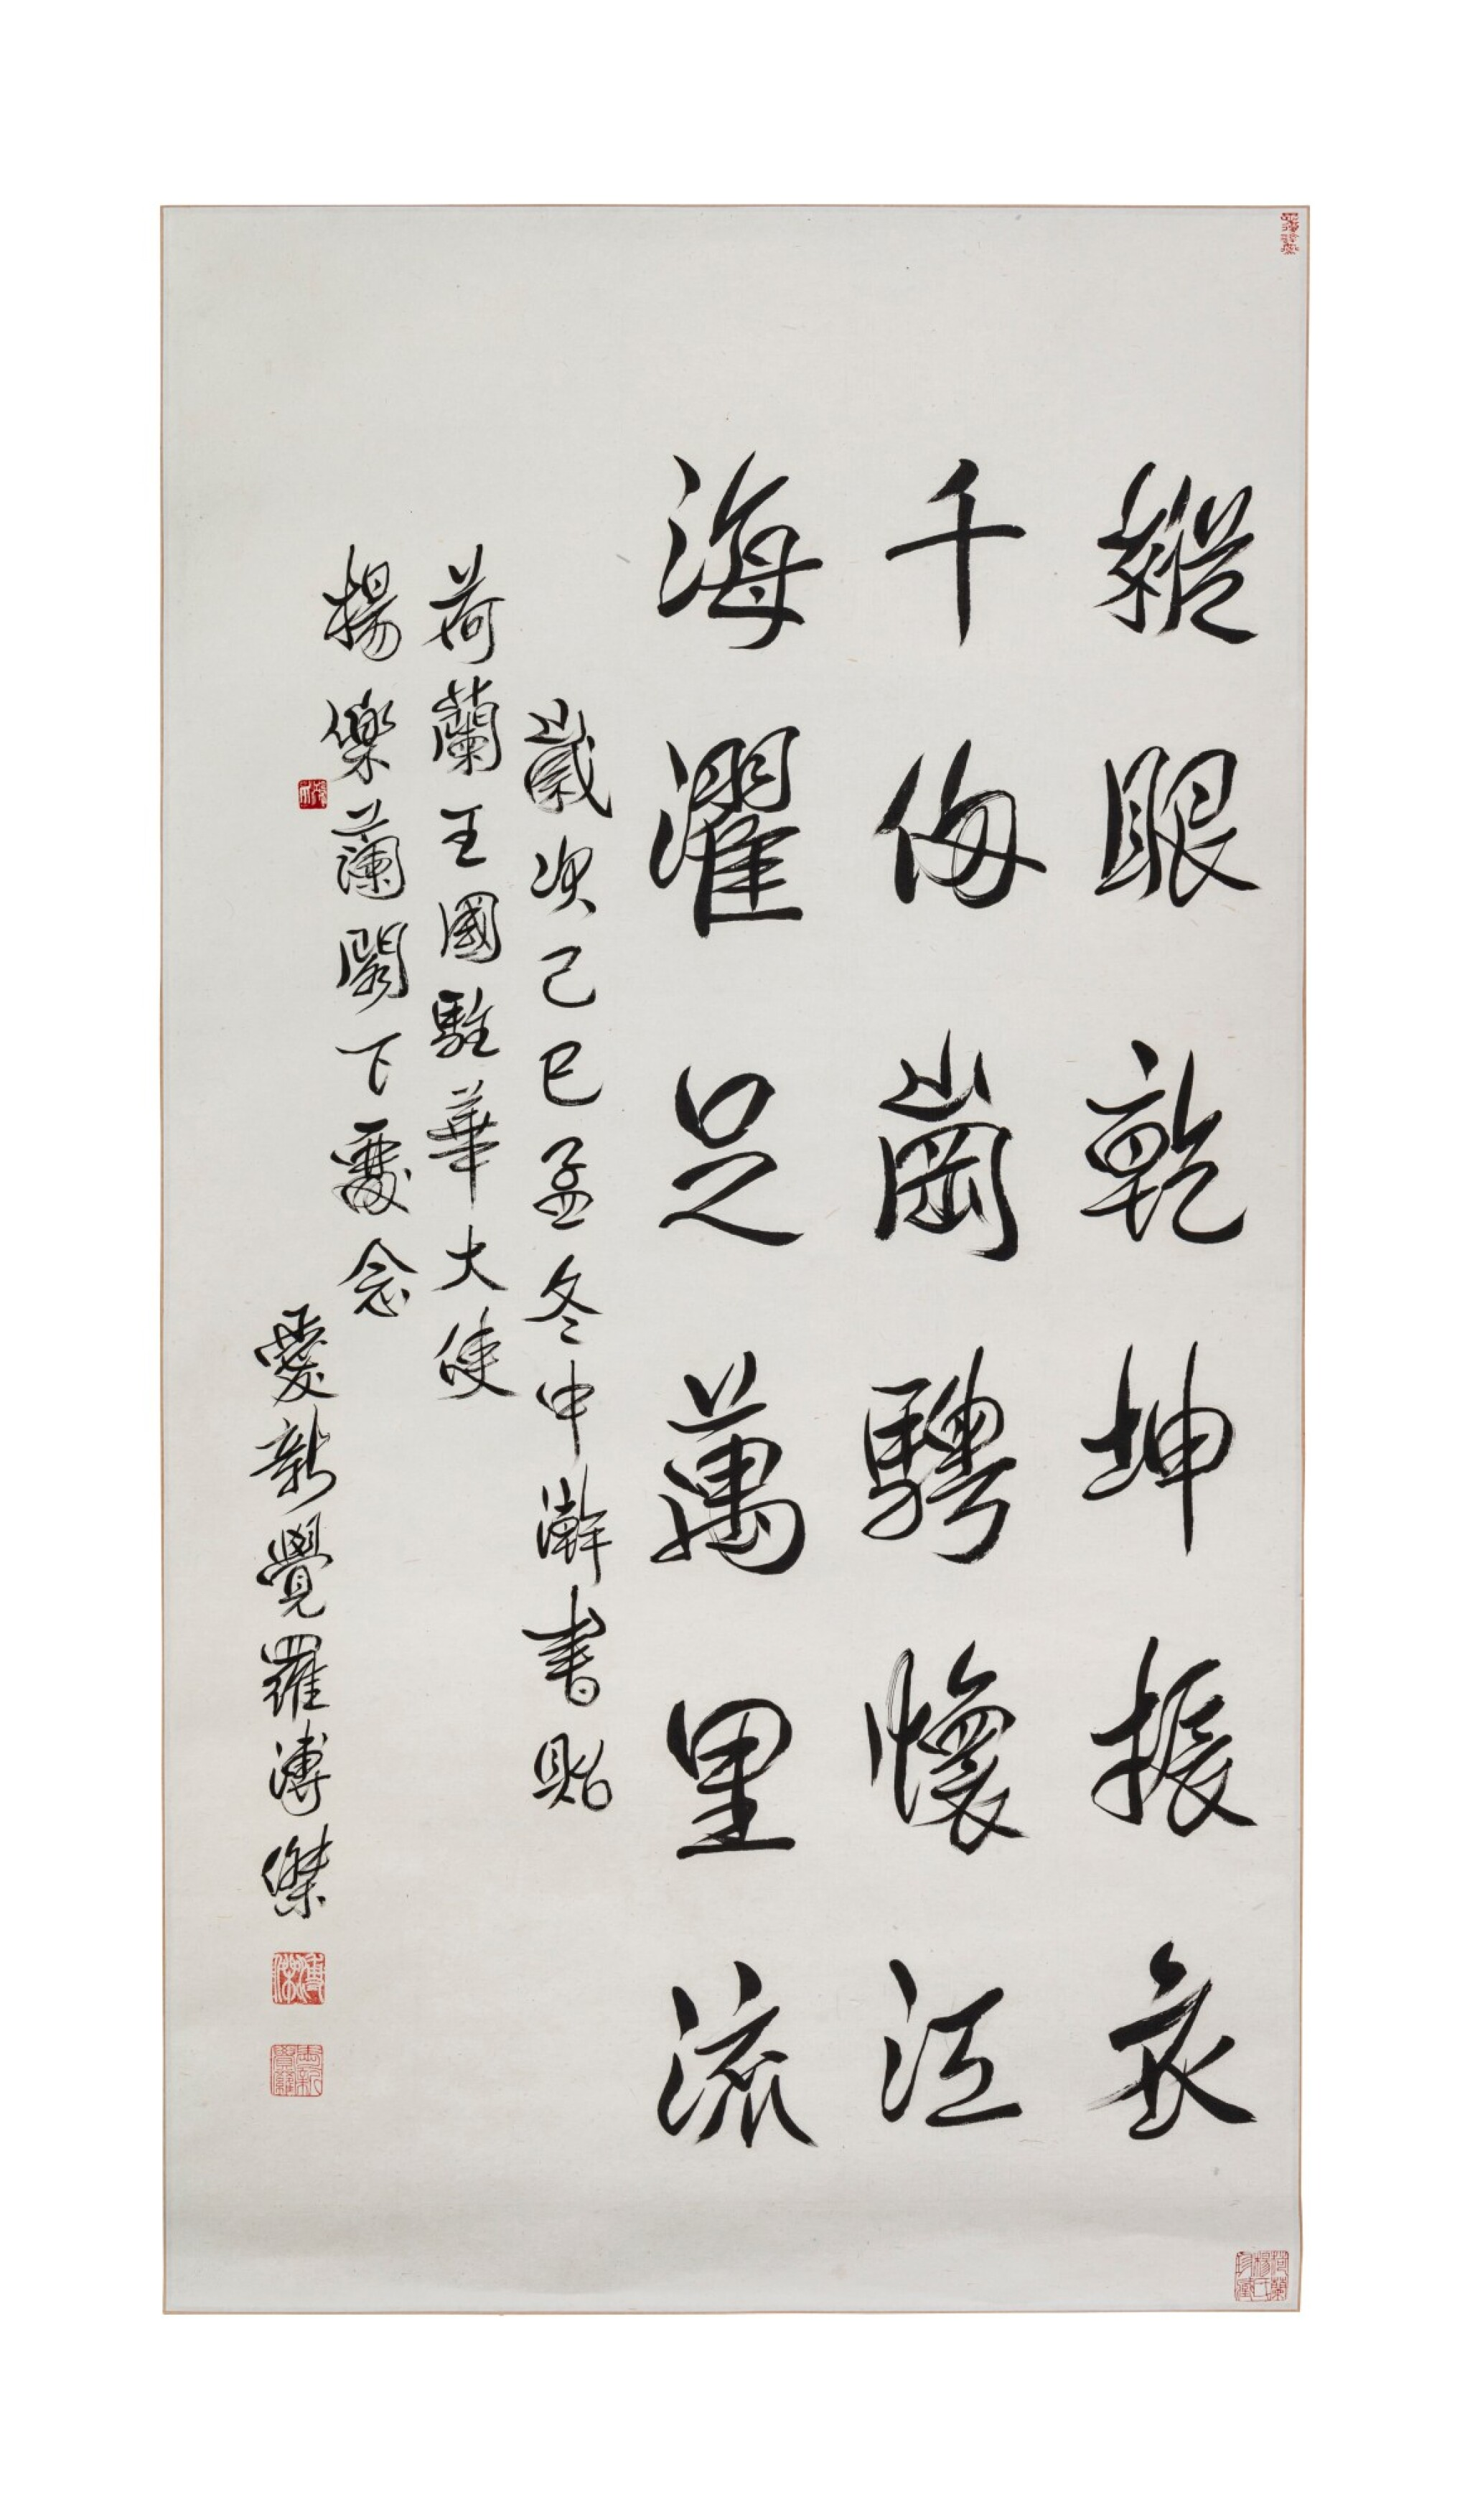 View 1 of Lot 129. Artistes variés Ensemble de dix calligraphies de style courant, régulier, des scribes, sigillaire | 書法 一組十幀 | Various artists Set of Ten Calligraphies in Running Script.